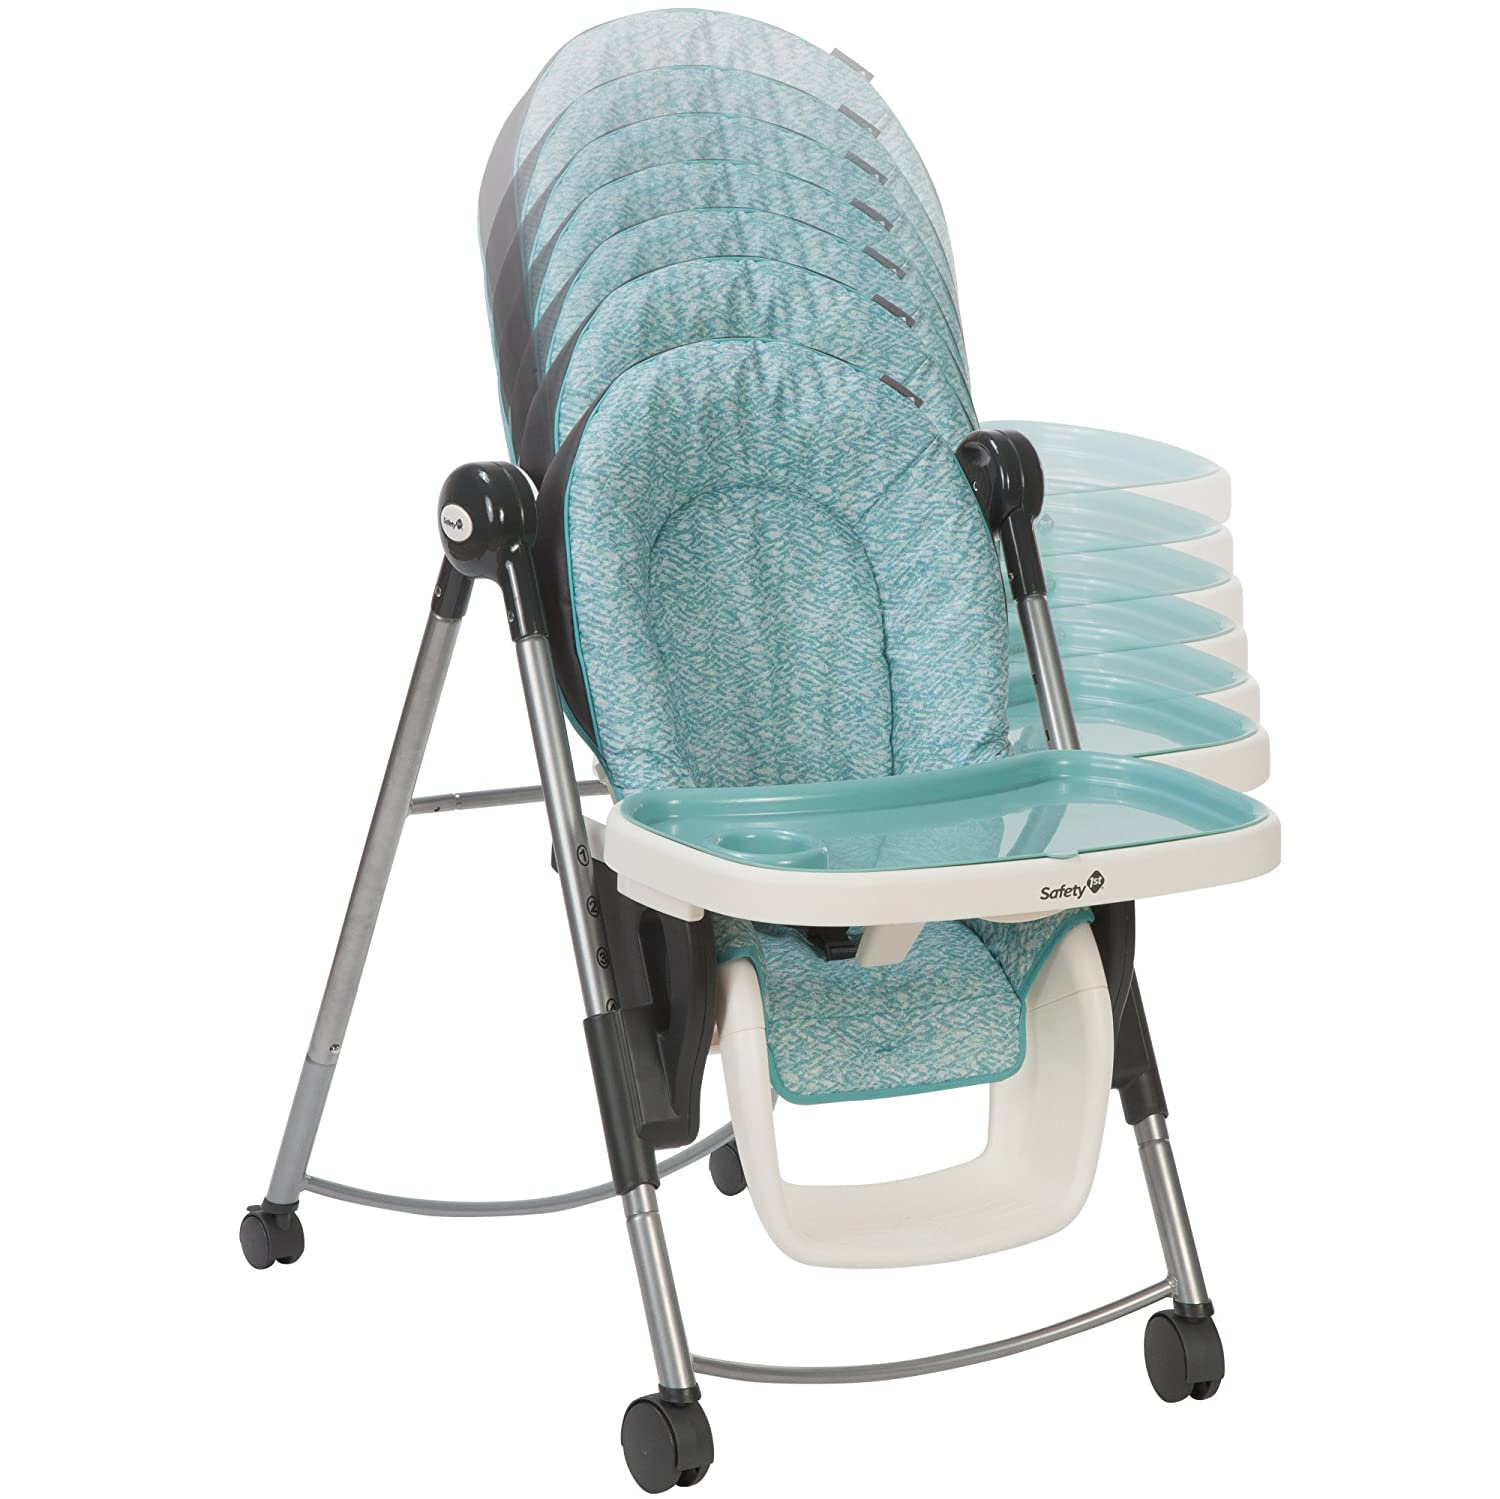 Amazon.com: Safety 1st Silla alta adaptable, Sorbet: Baby